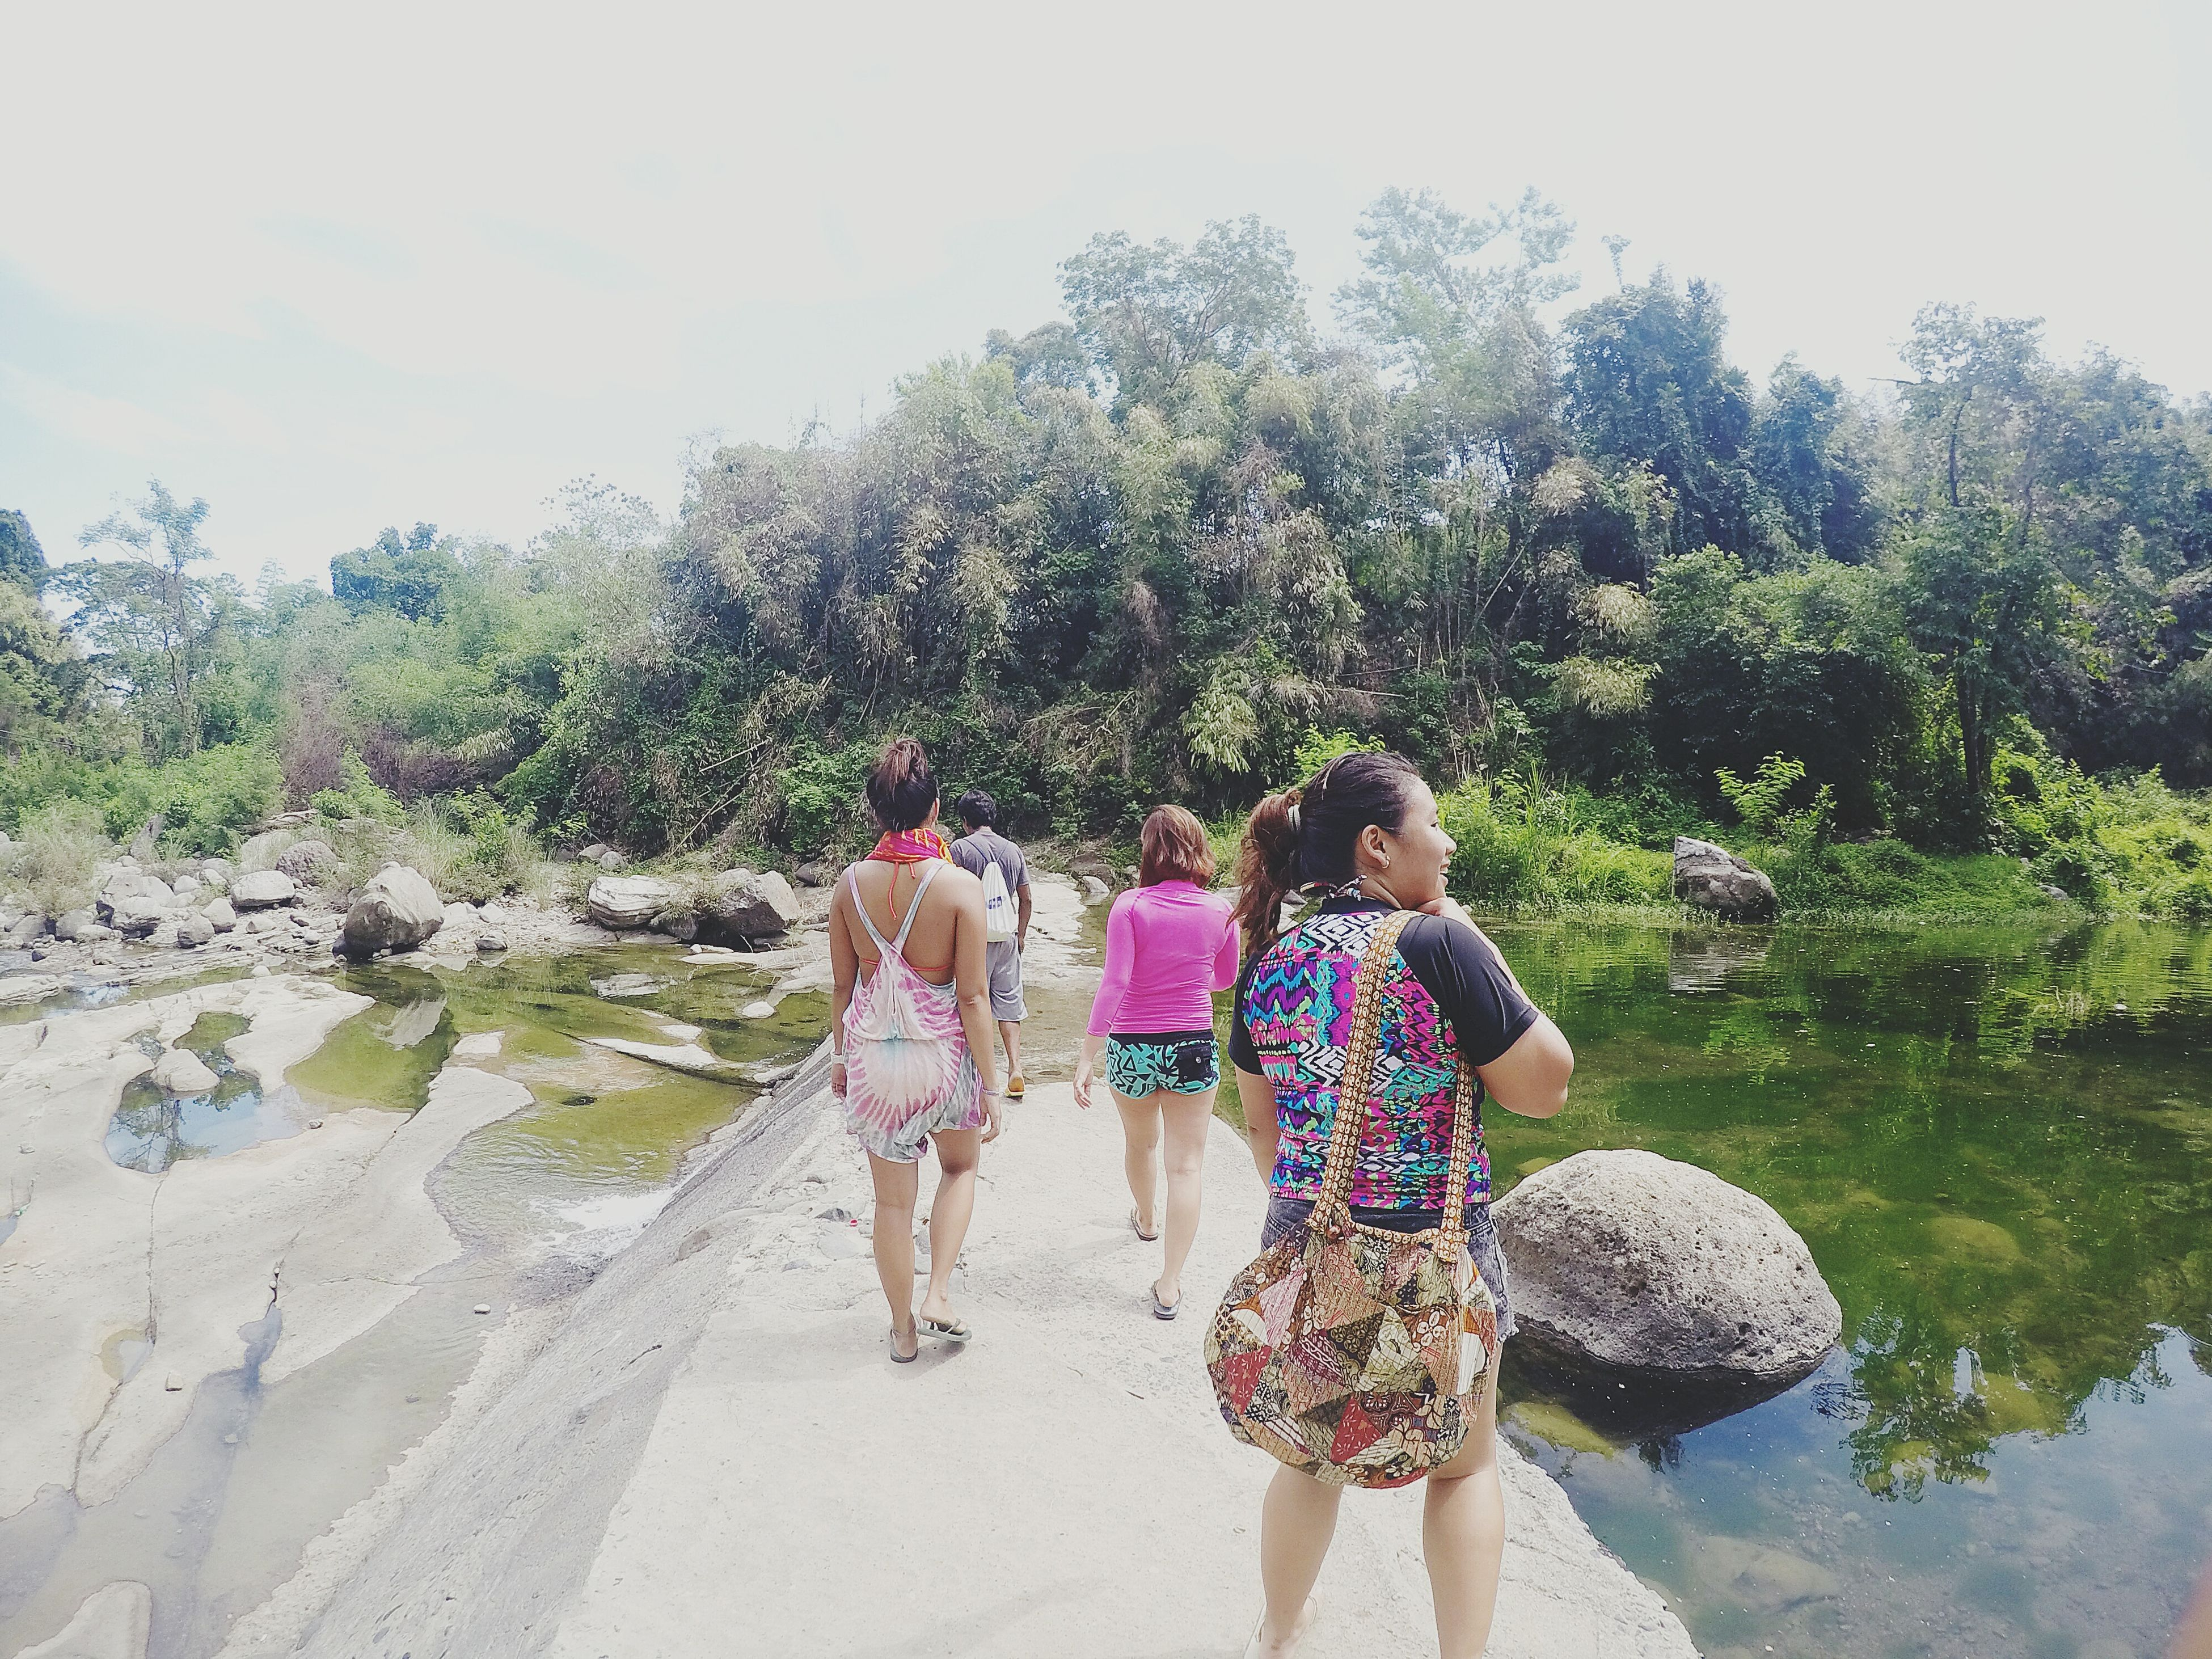 lifestyles, leisure activity, rear view, full length, person, tree, men, togetherness, walking, casual clothing, bonding, vacations, standing, sunlight, nature, beach, clear sky, friendship